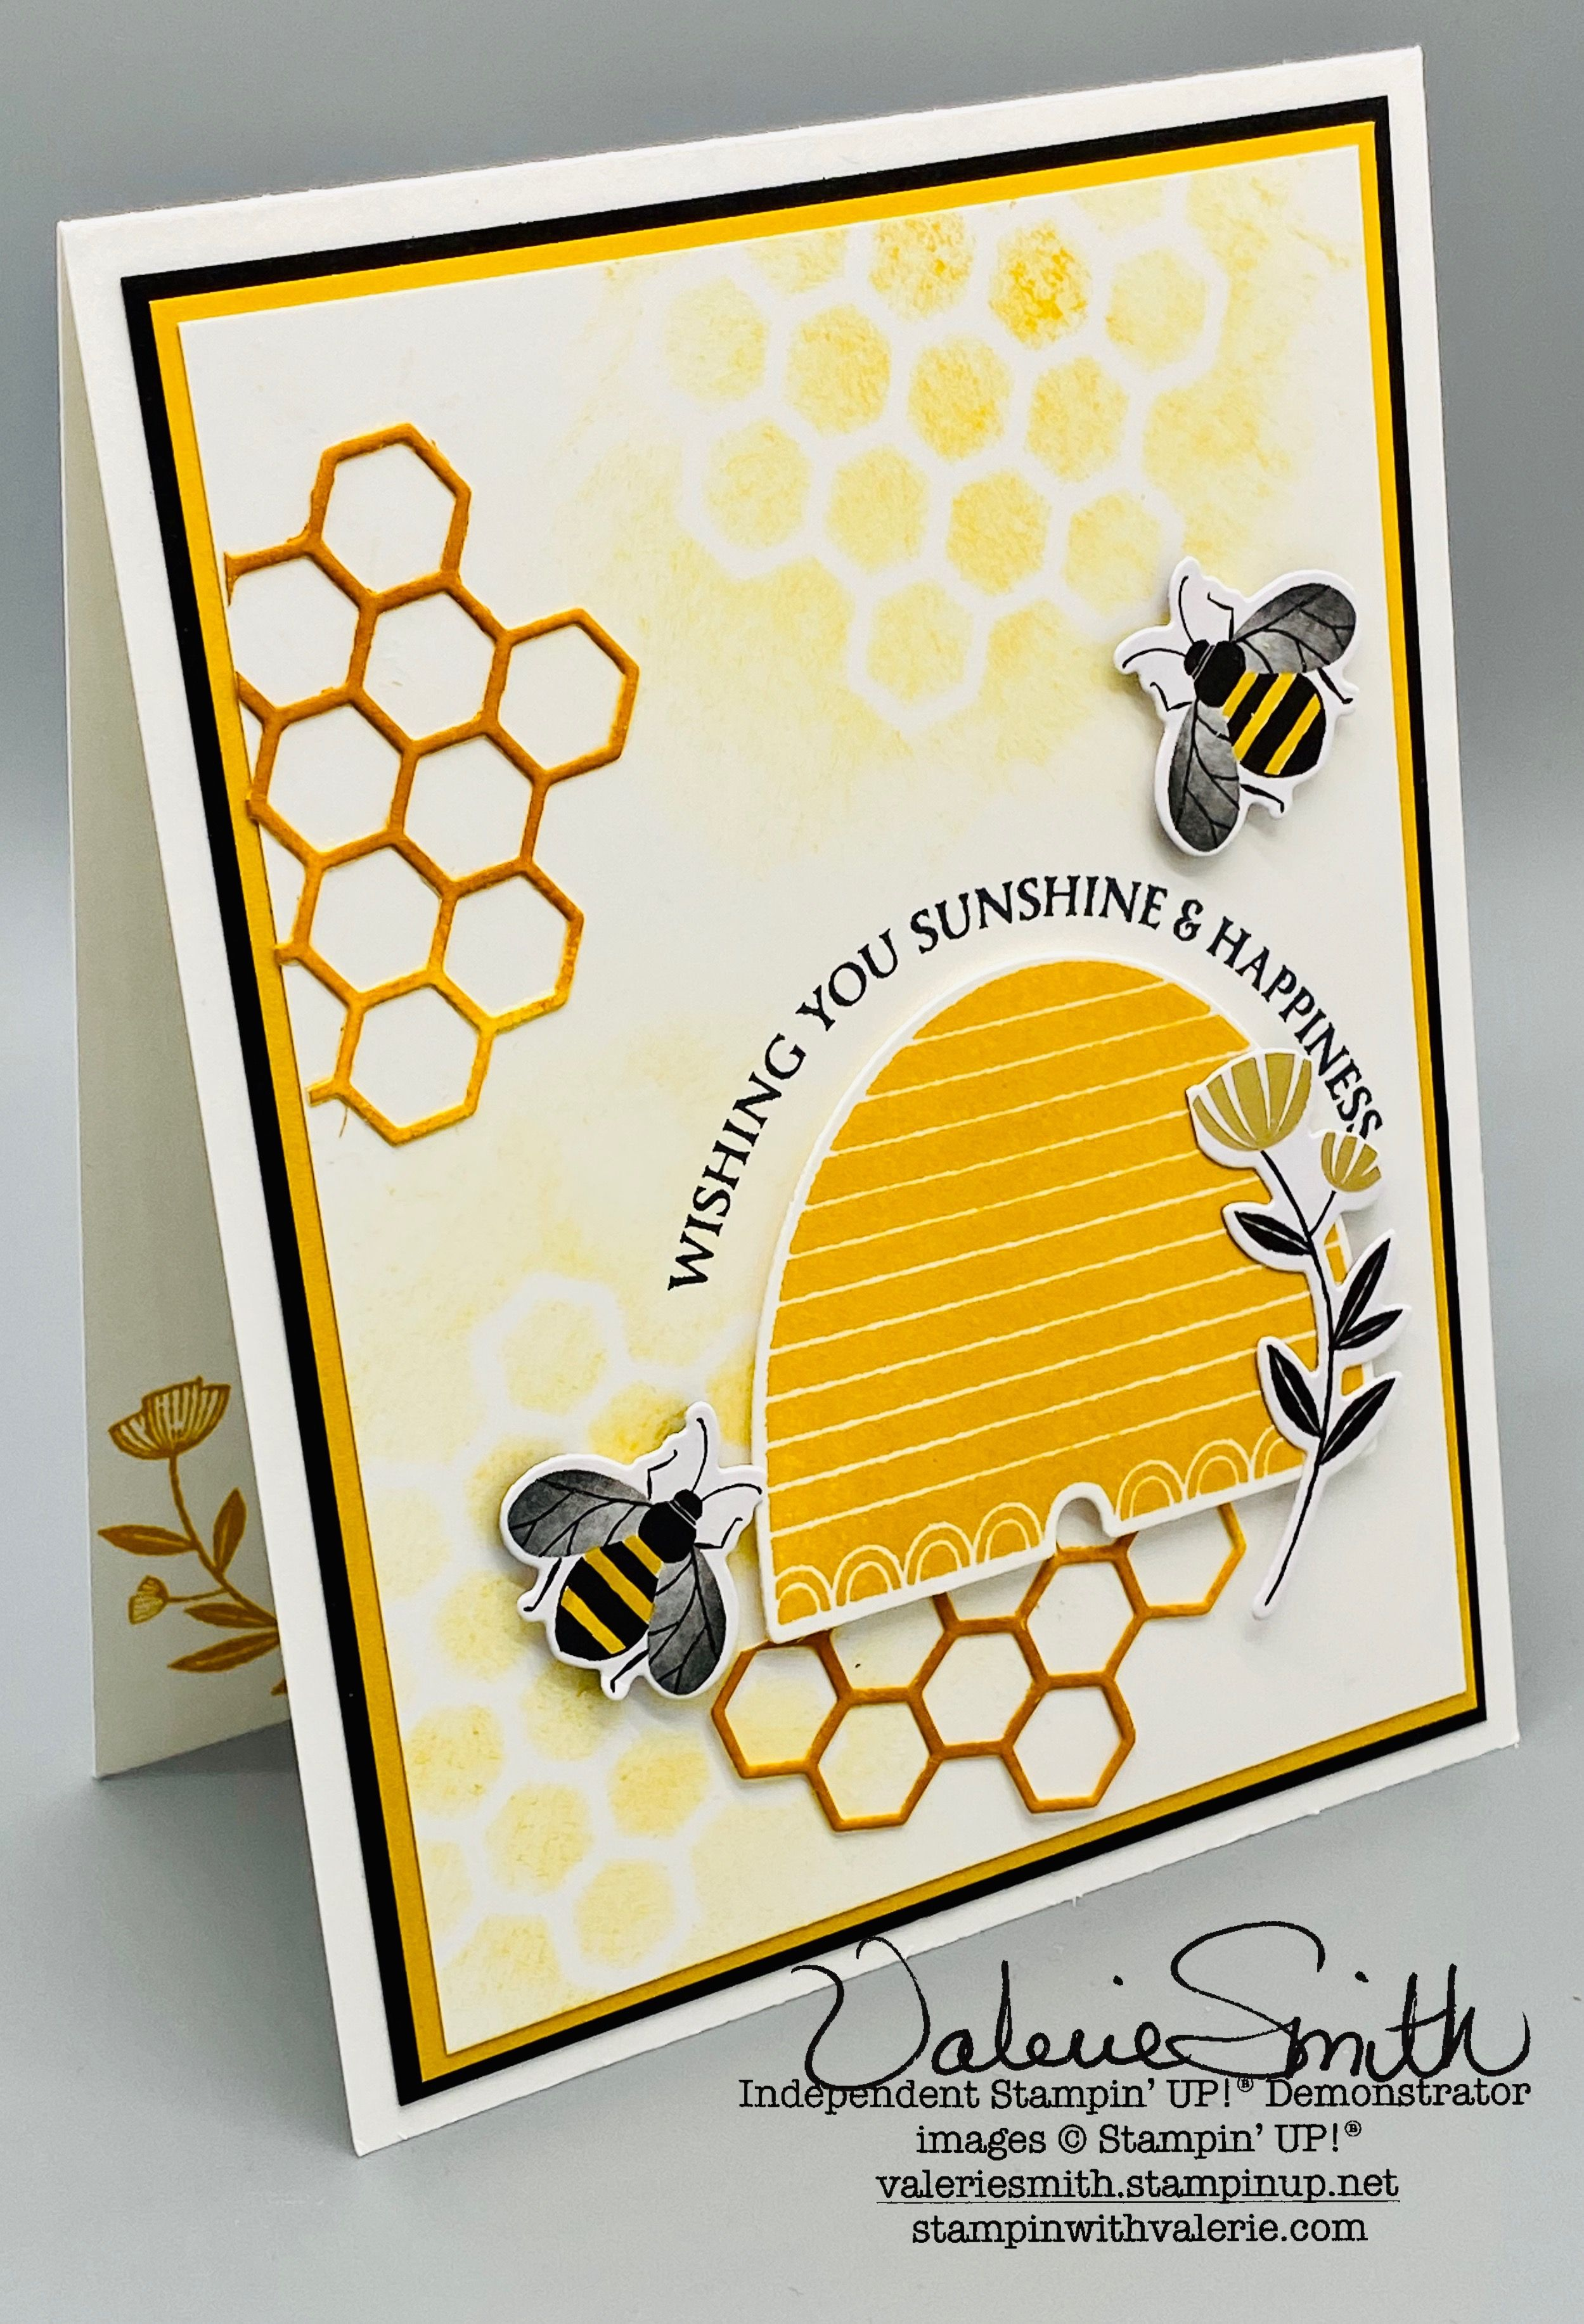 Mini Note Cards Bee Happy Mini Birthday Cards for Beekeeper gift